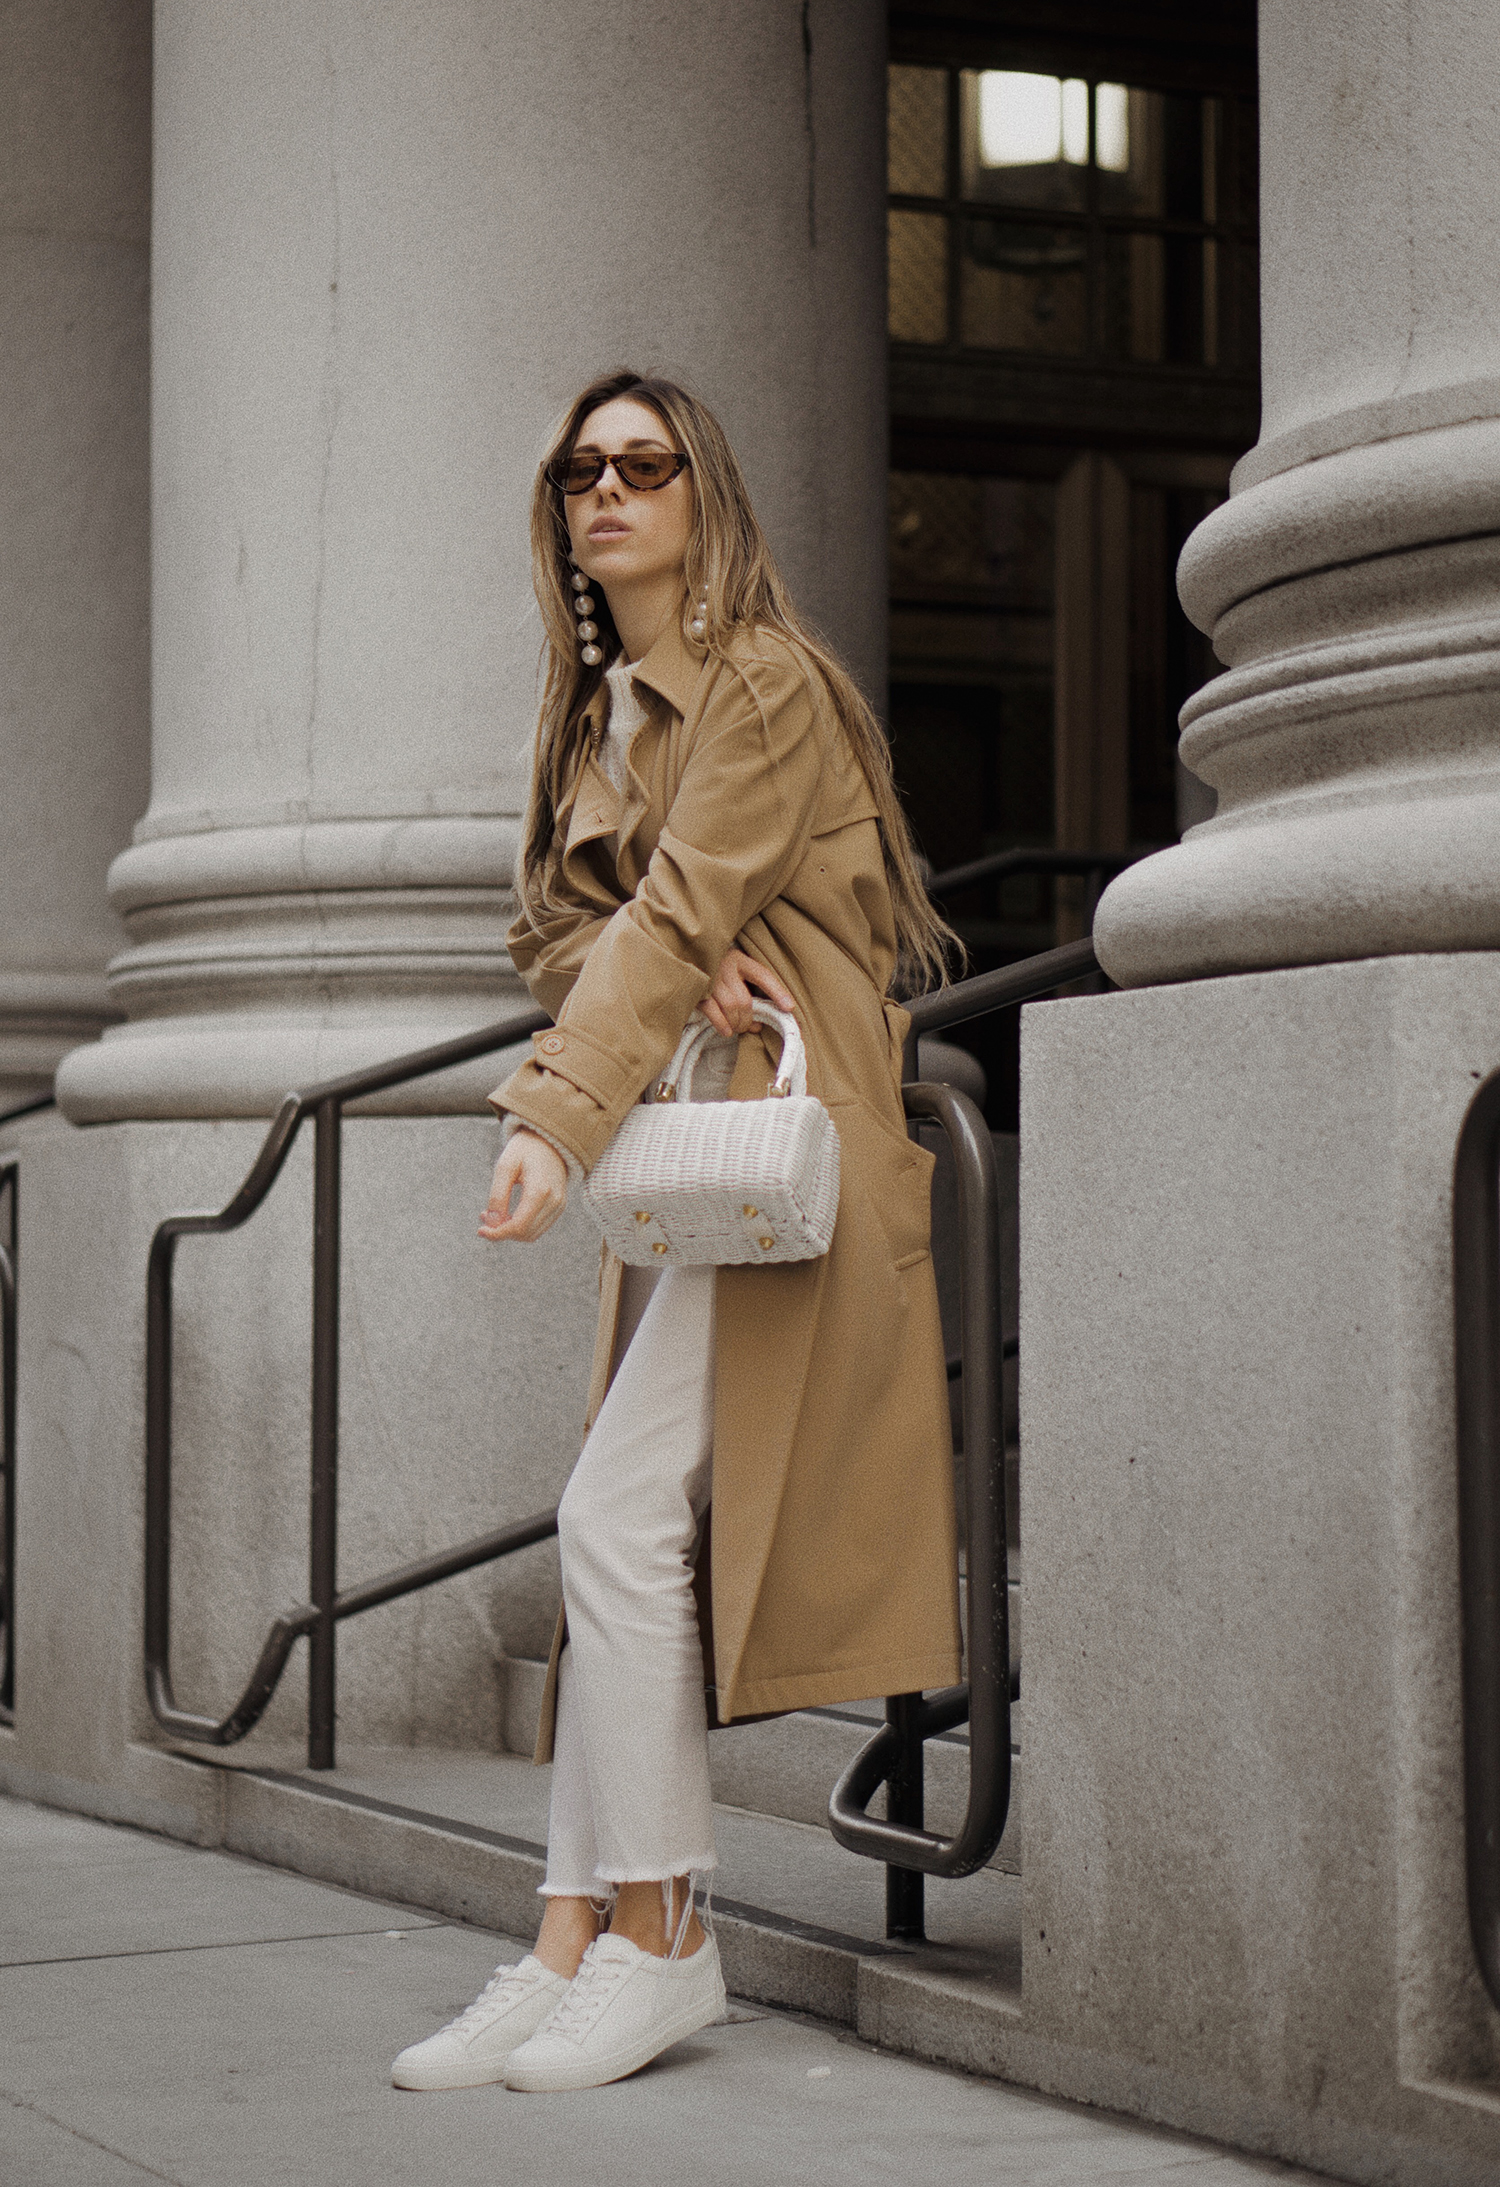 paulsmith_trenchcoat_vinceshoes_wicker_bag_white_outfit_freepeople_lenajuice_thewhiteocean_05